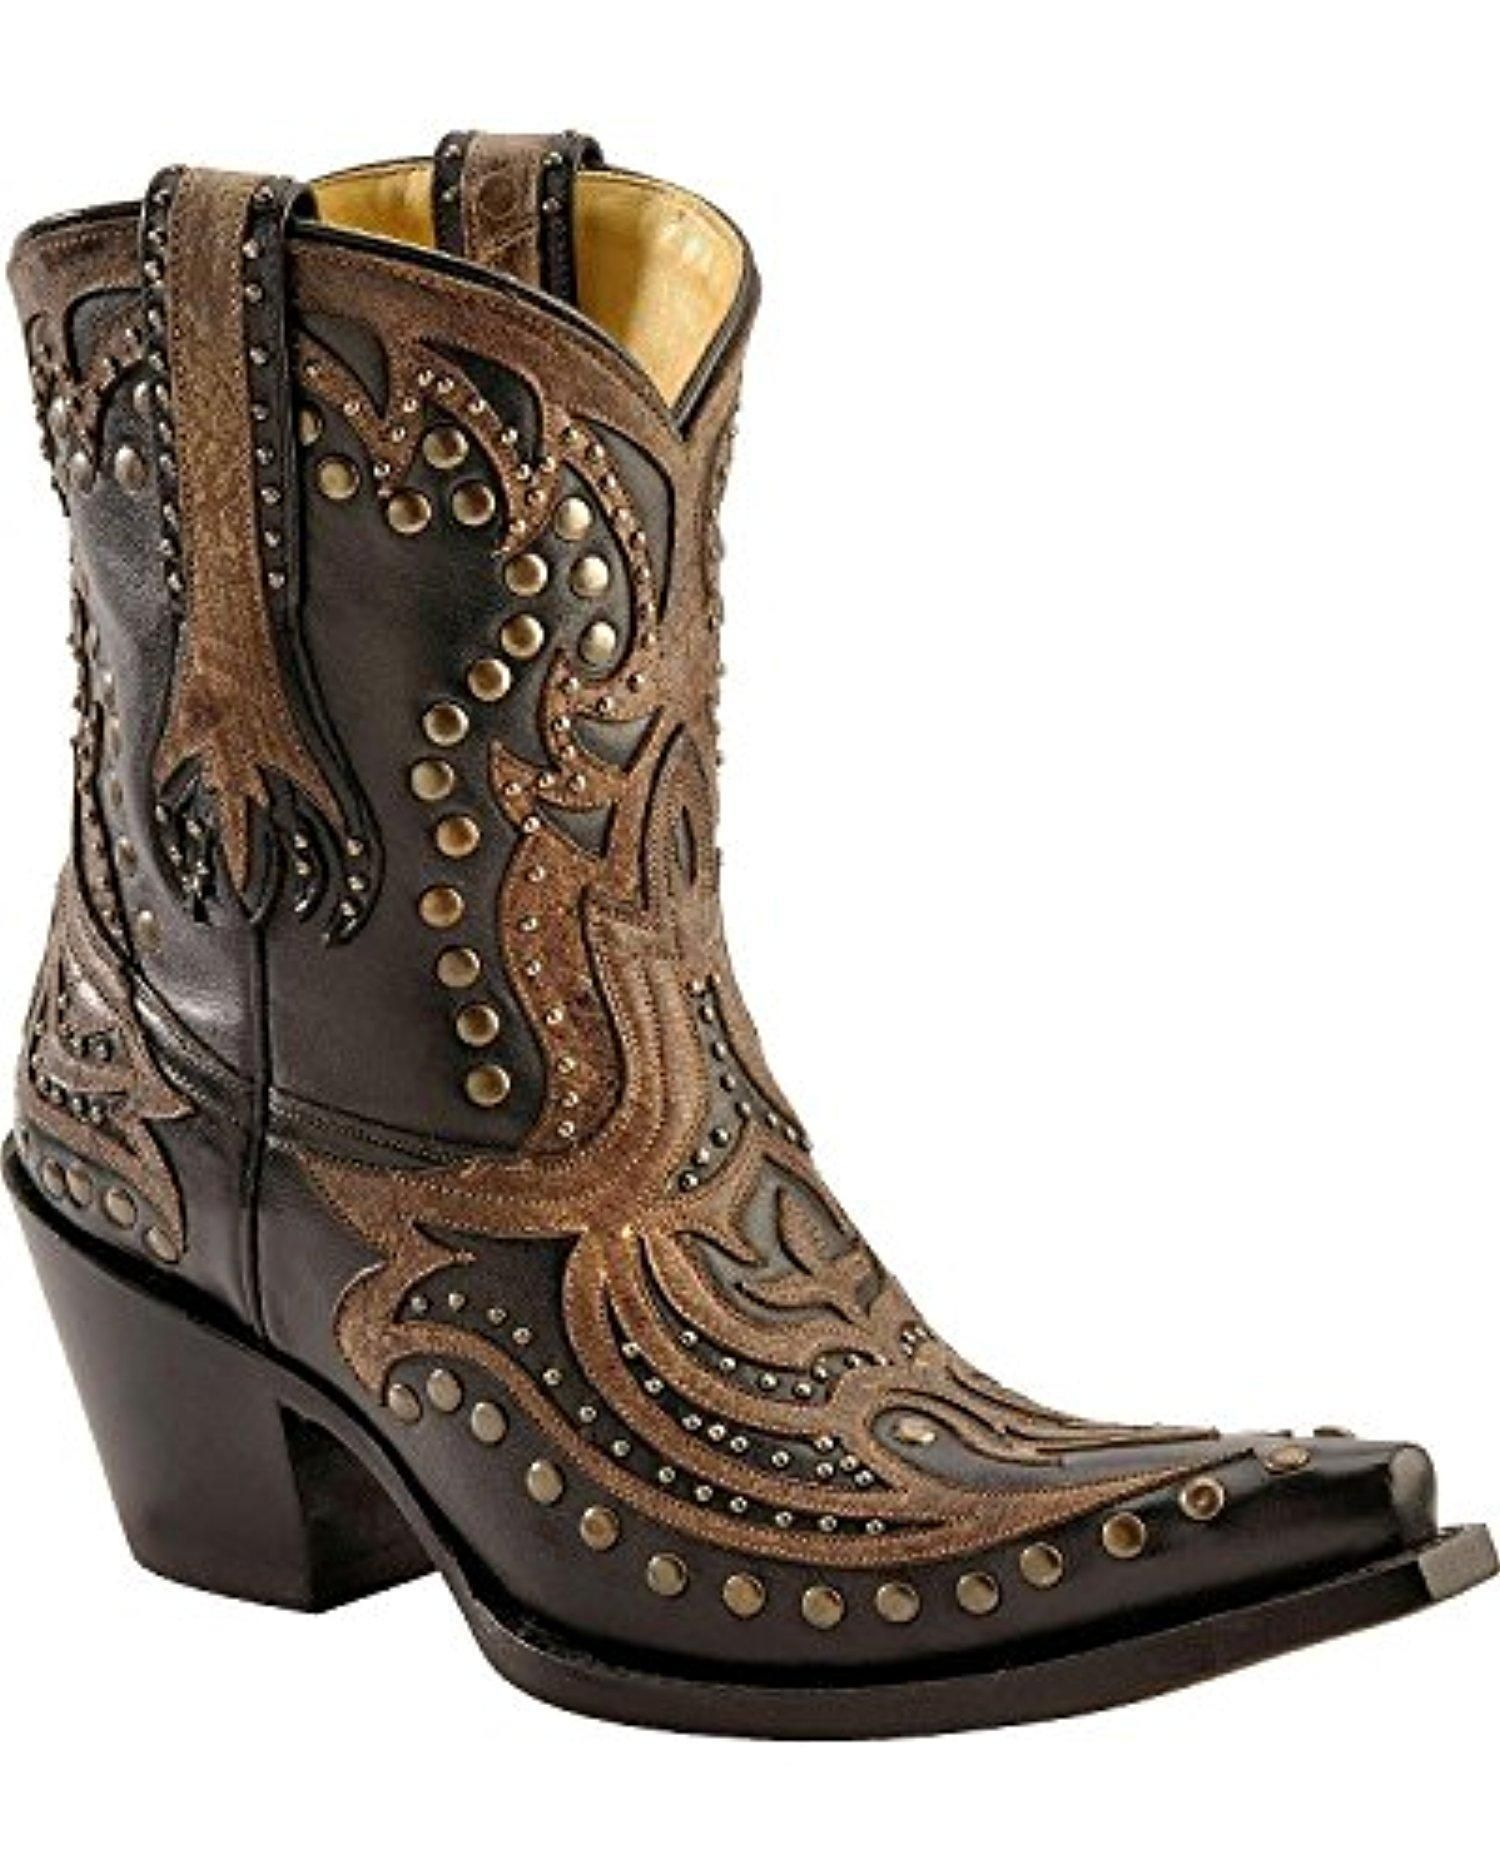 6a2d6008b70f5 Corral Women's Distressed Overlay Studded Short Boot Snip Toe Black 6.5 M  US - Brought to